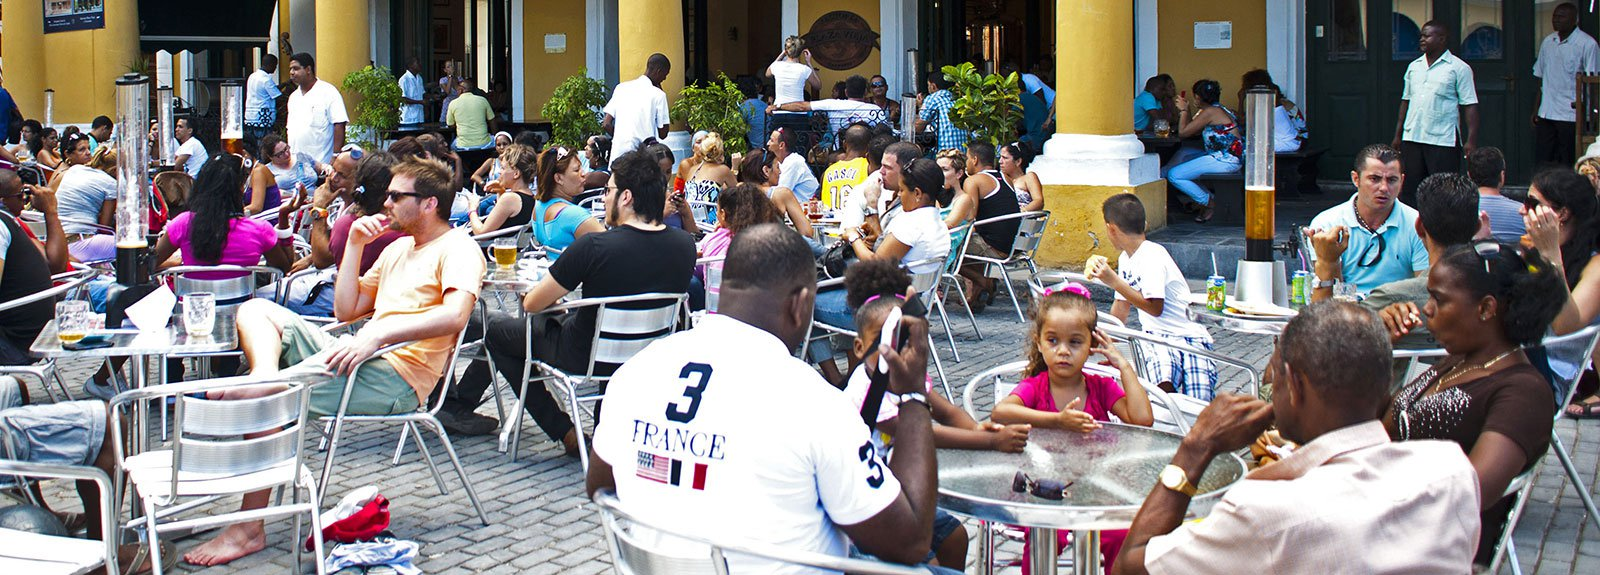 Factoria Plaza Vieja restaurant  in Old Havana, people drinking beer and eating, spanish tavern decoration